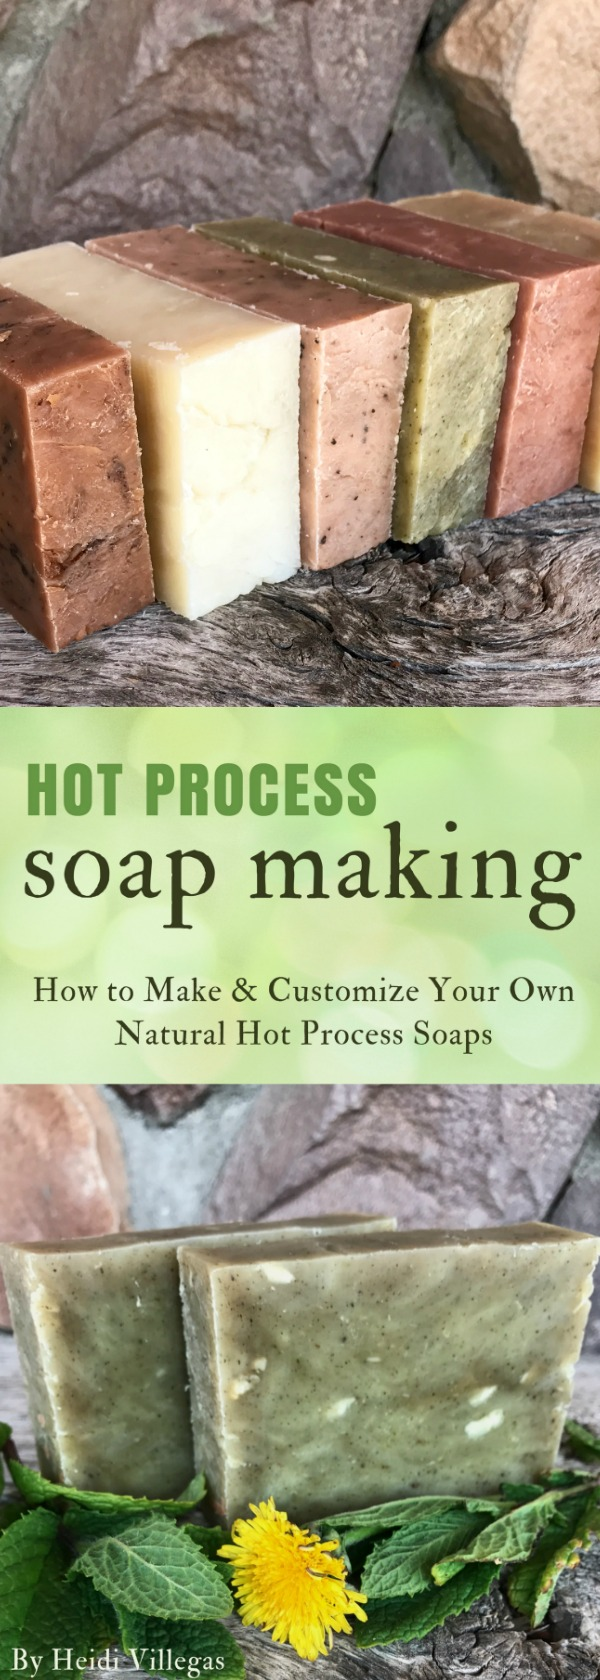 The secret to making and customizing your own hot process soap its fun hot process soap making is fast so here it is my 88 page ebook hot process soap making how to make customize your own natural hot process fandeluxe Document